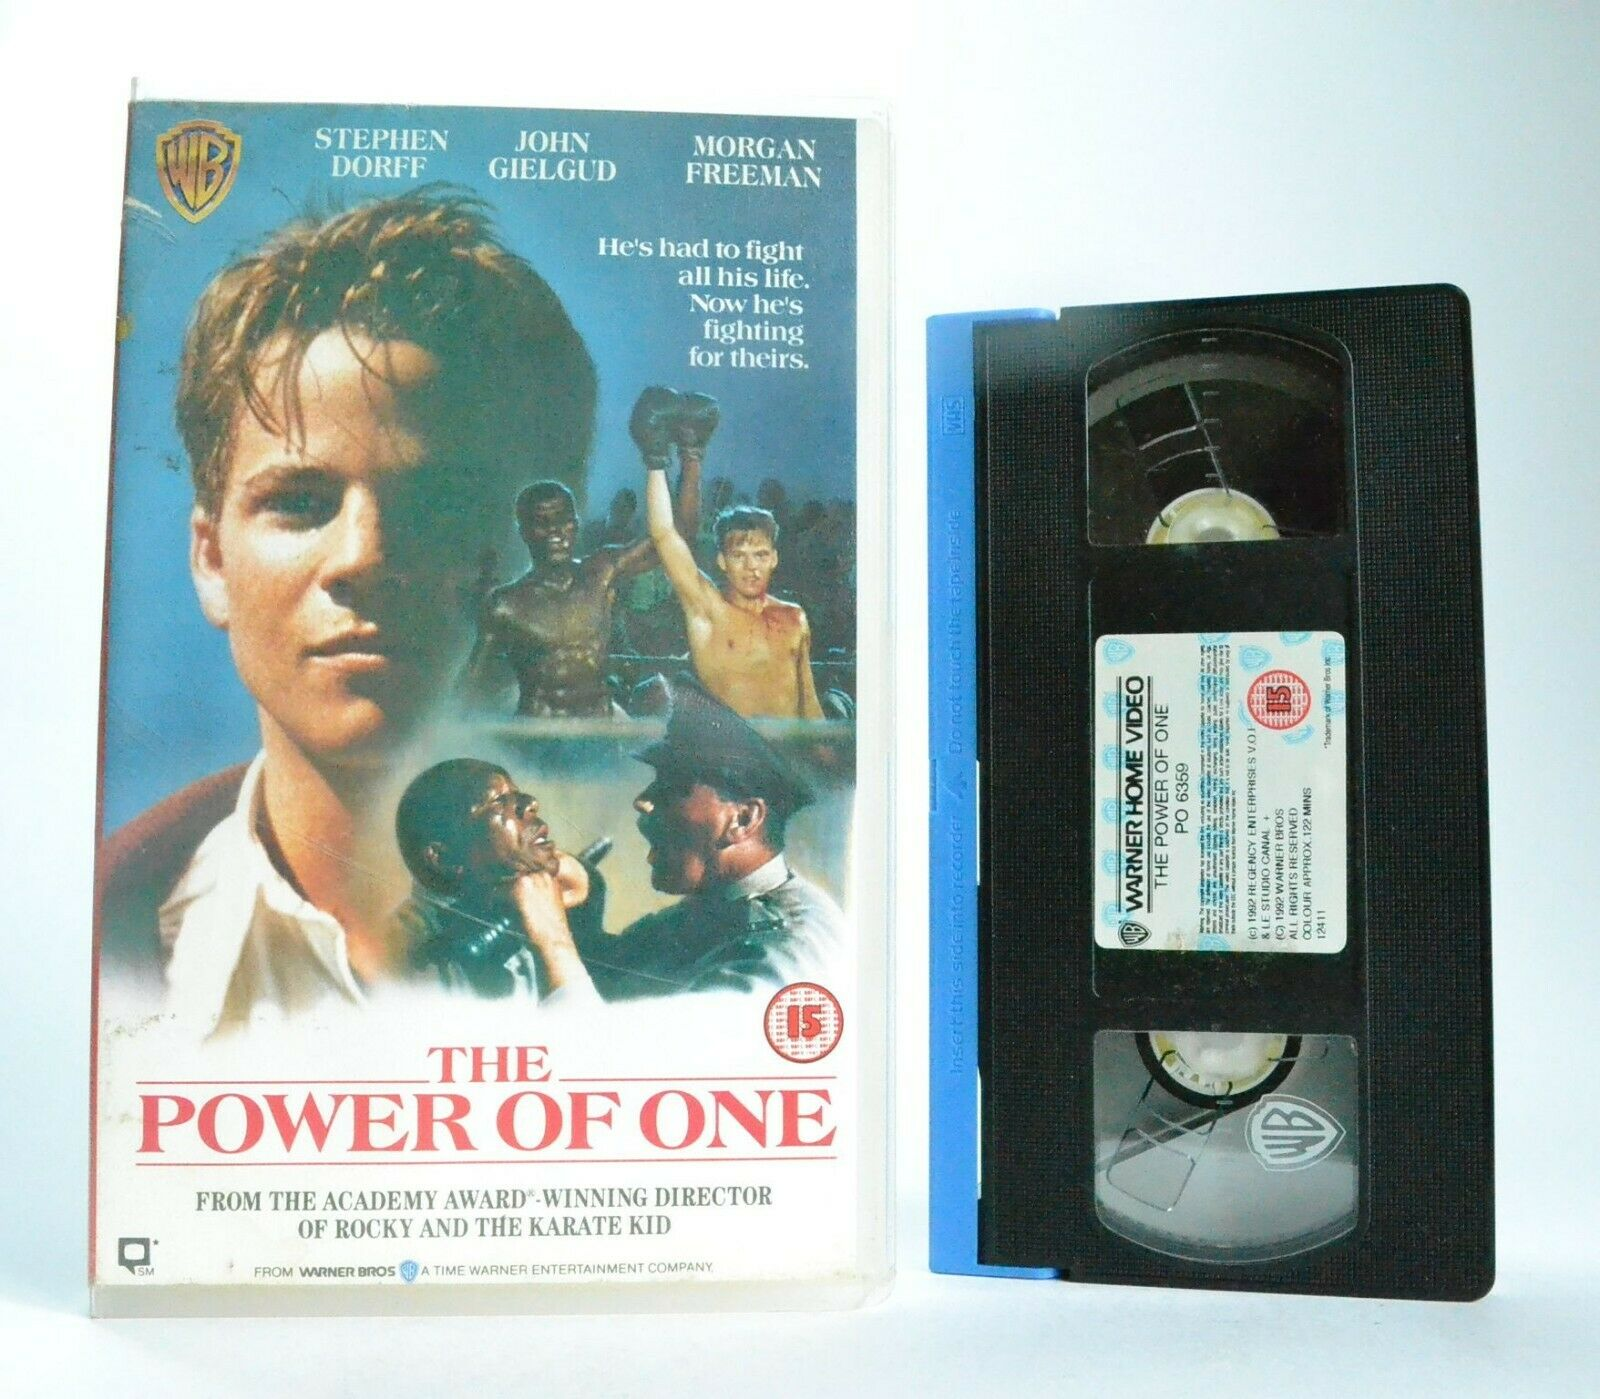 The Power Of One: Based On B.Courtenay Novel - (1992) Drama - World War 2 - VHS